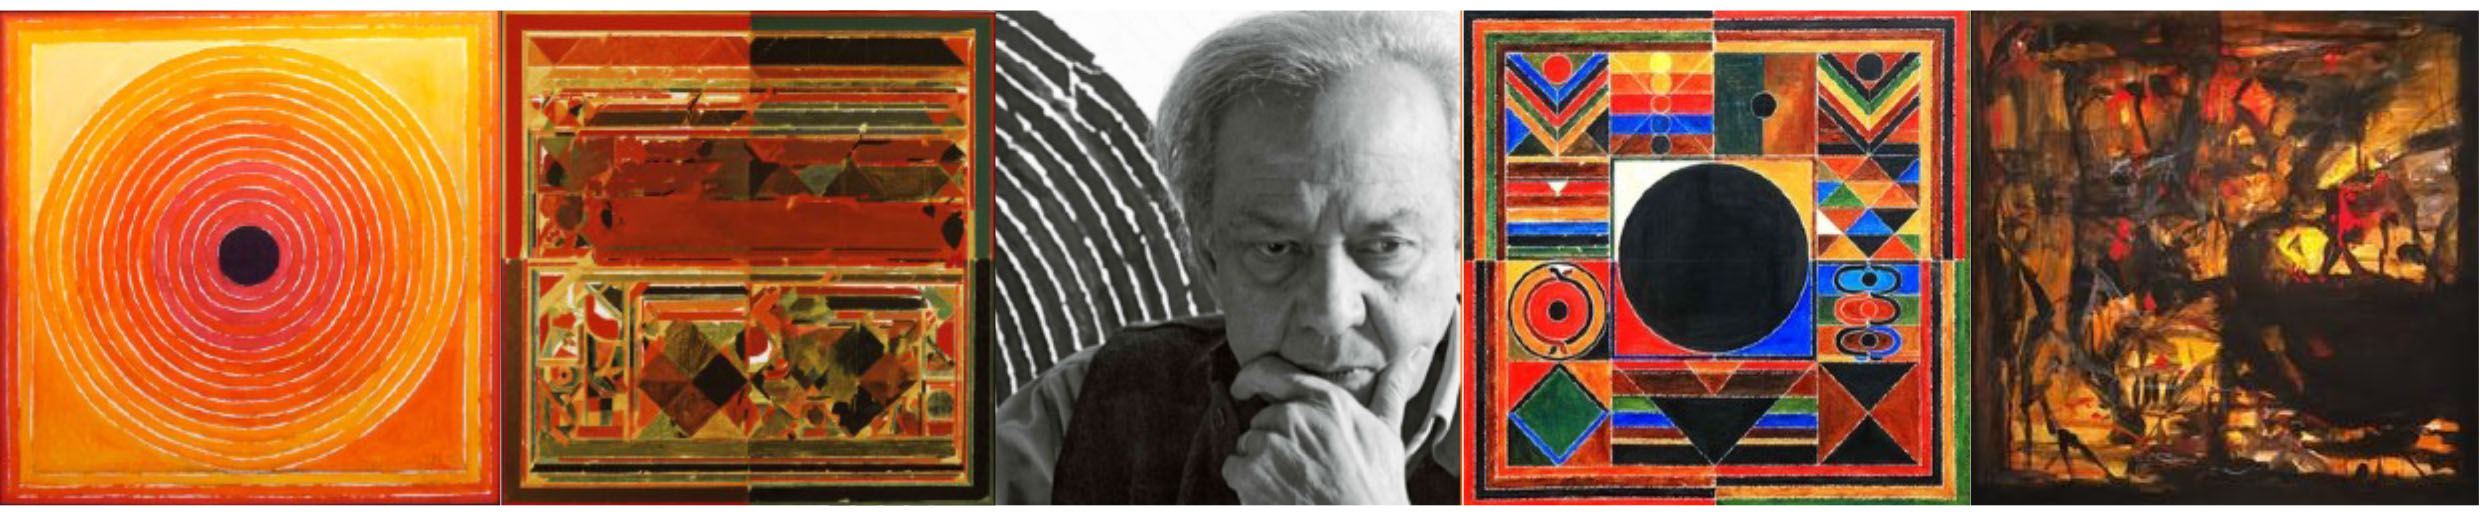 Sayed Haider Raza - Paintings